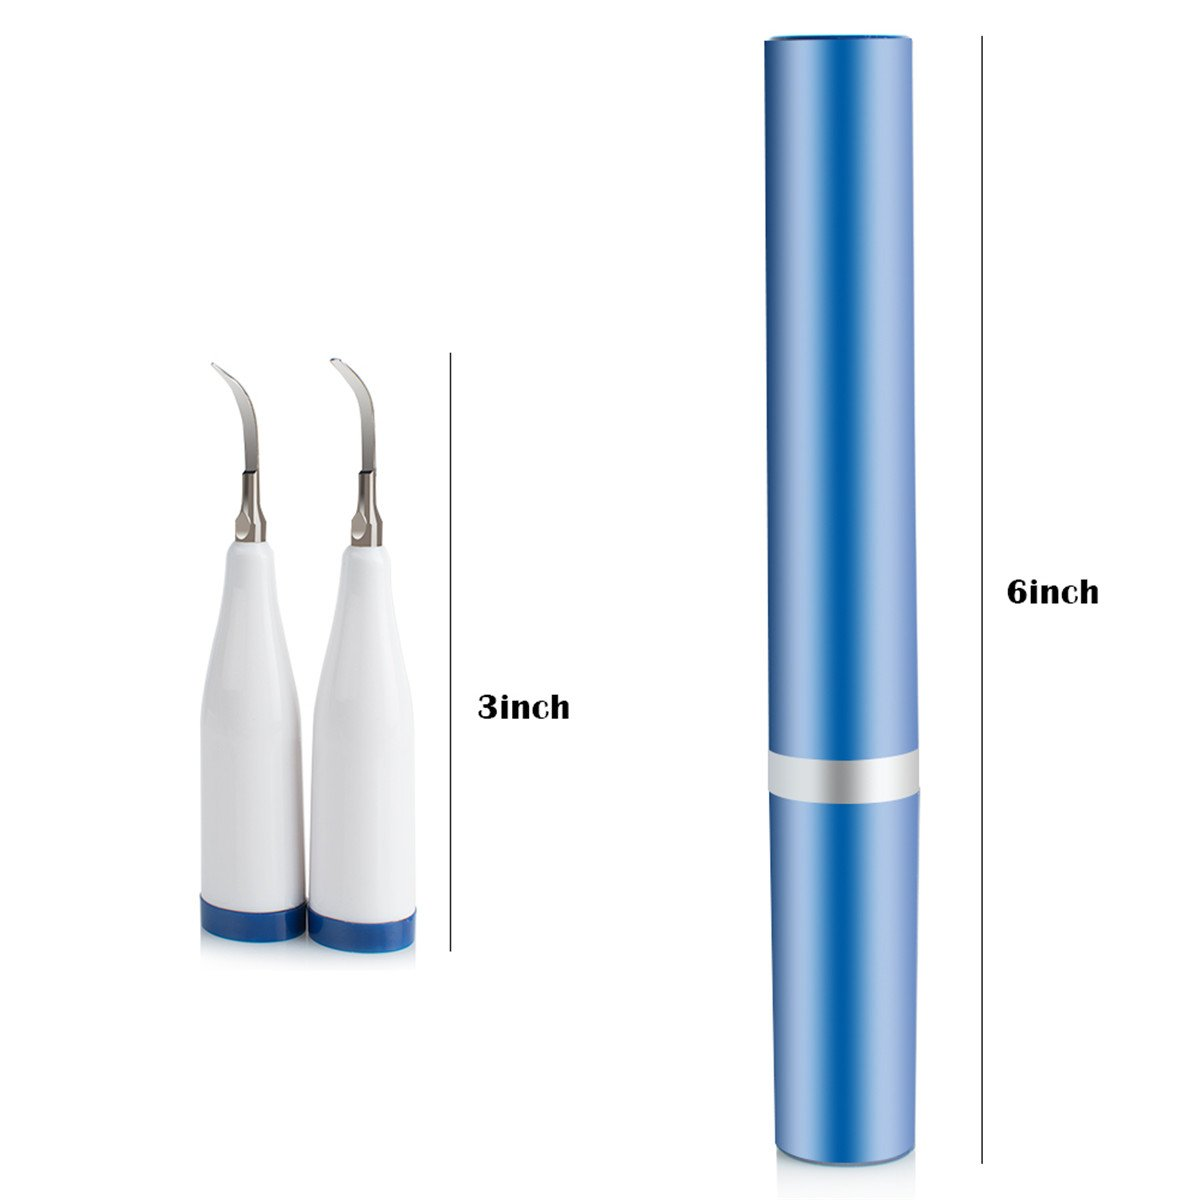 Teeth Polisher Teeth Cleaner,Fencia Teeth Tartar Plaque Stain Remover Dental Calculus Cleaner High Frequency Vibration Sonic Toothbrush 2 in 1 by Fencia (Image #7)